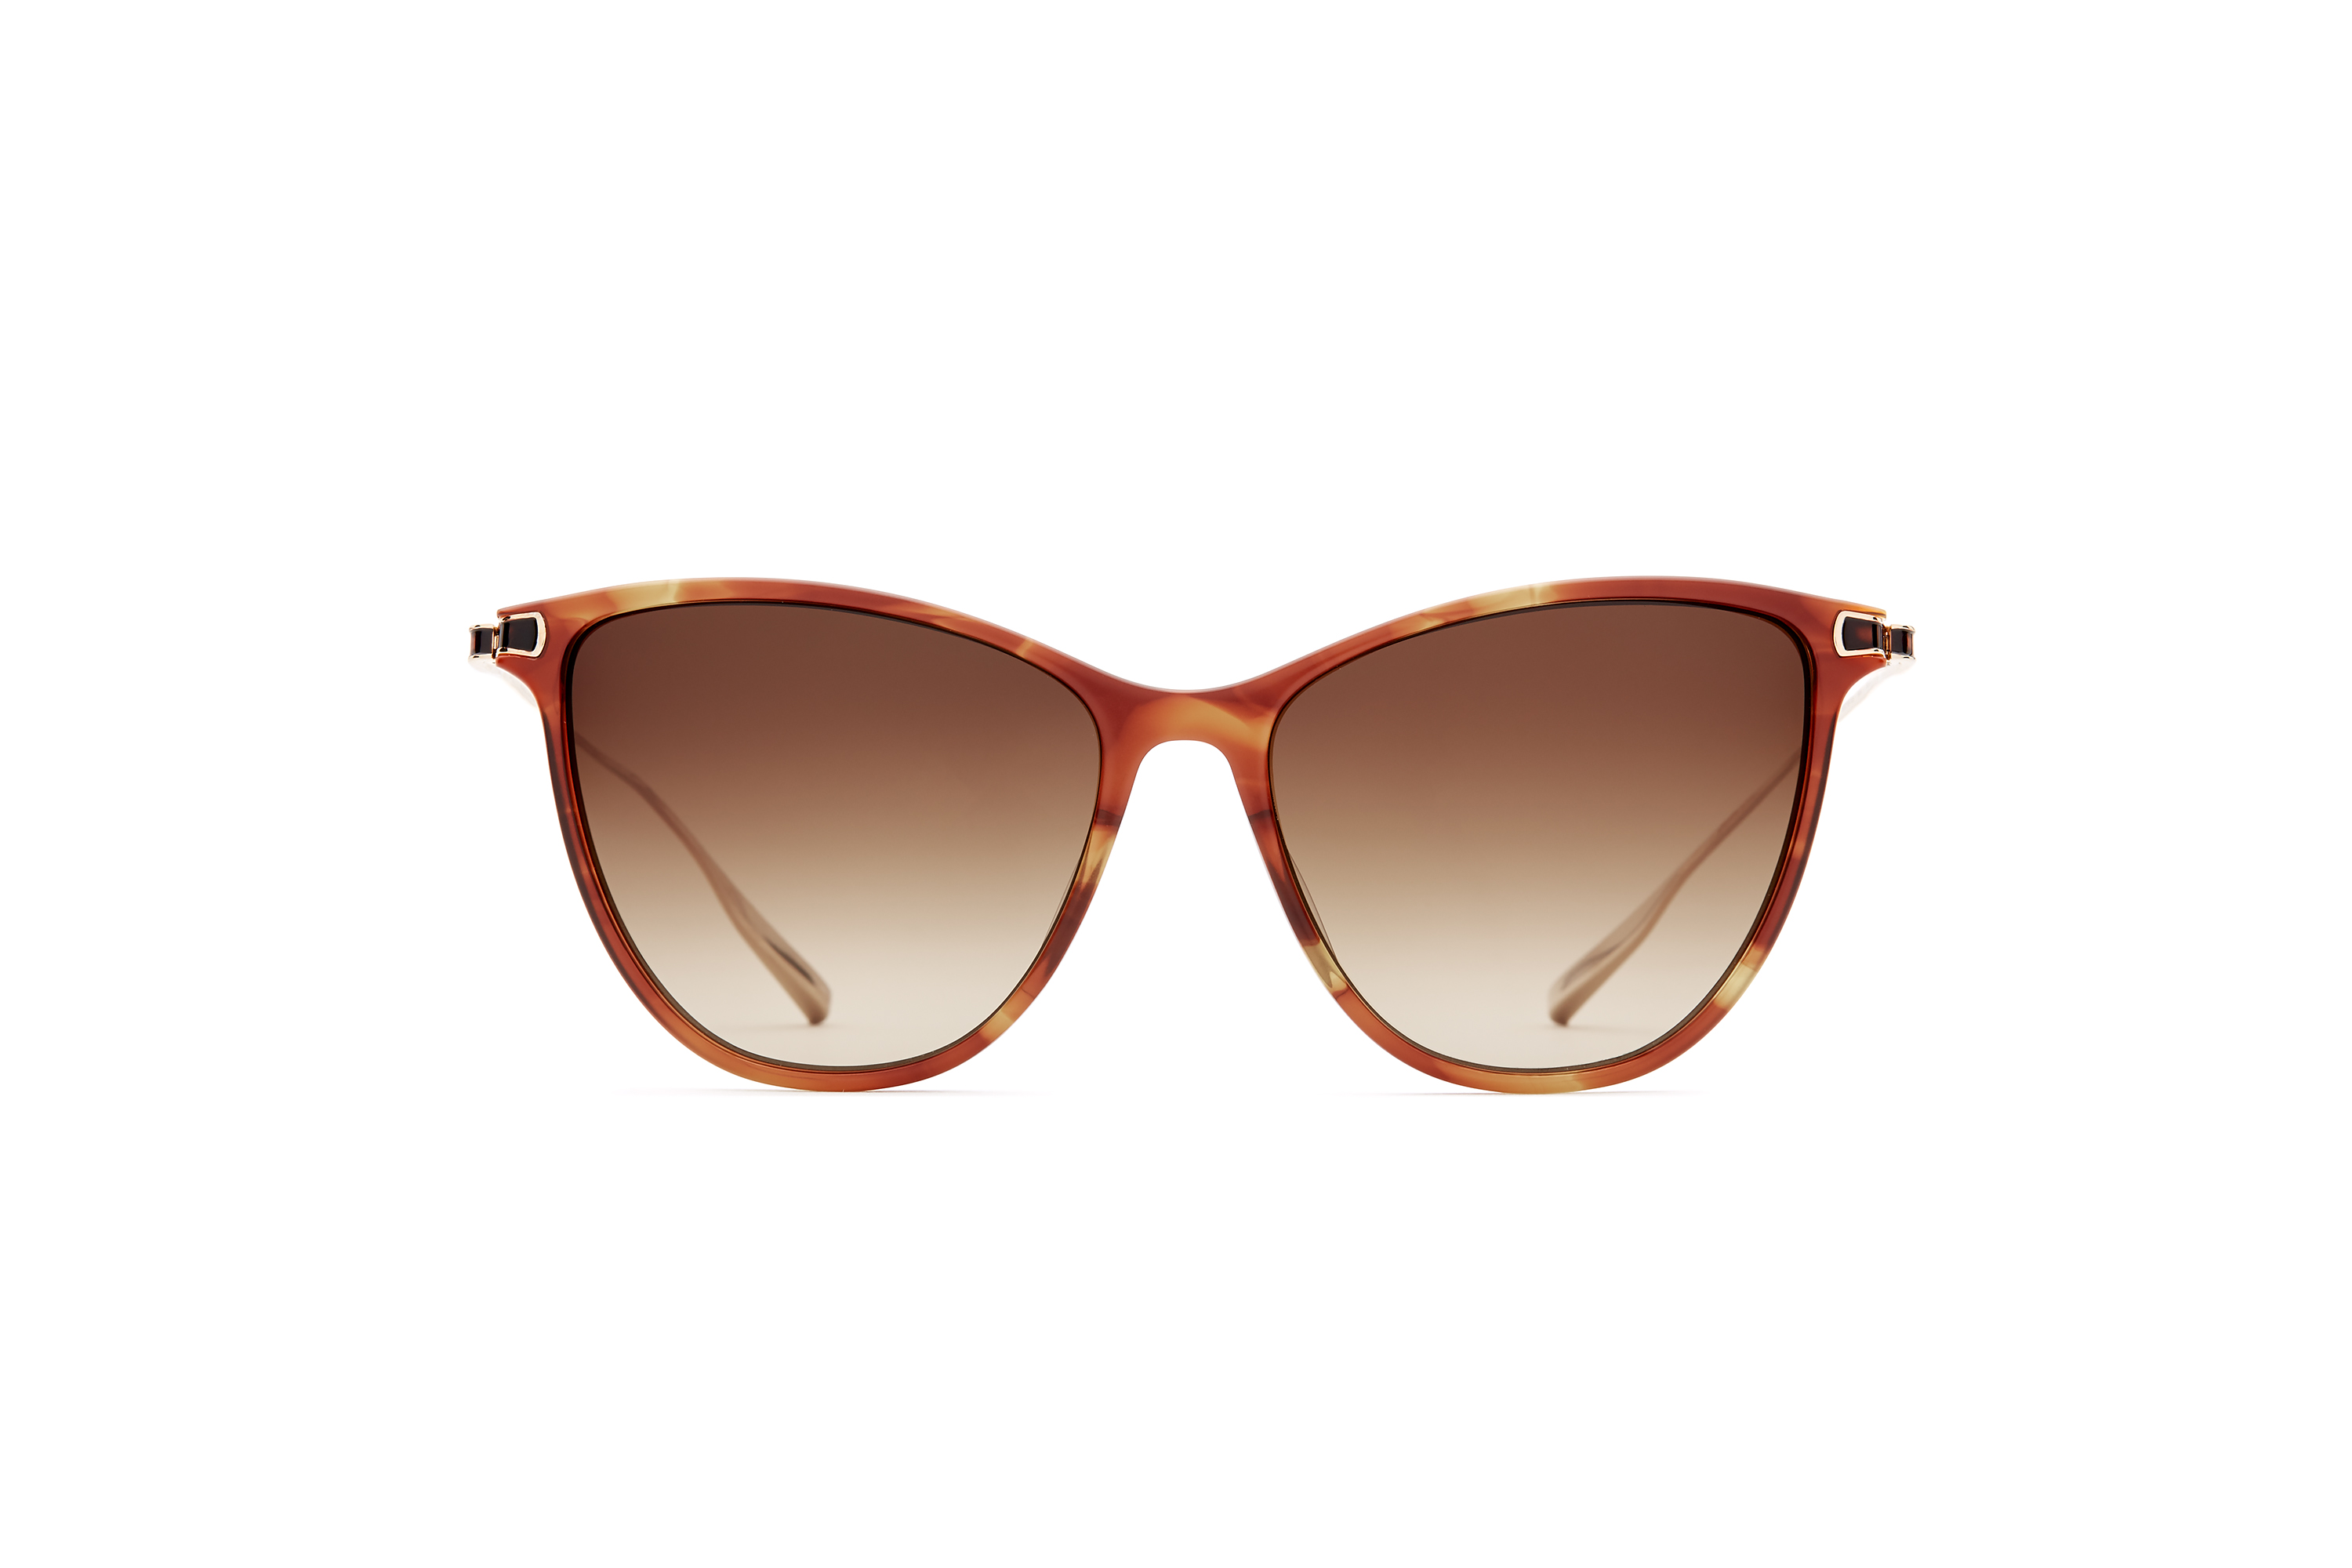 SALT. | frame: NIA | color: butterscotch